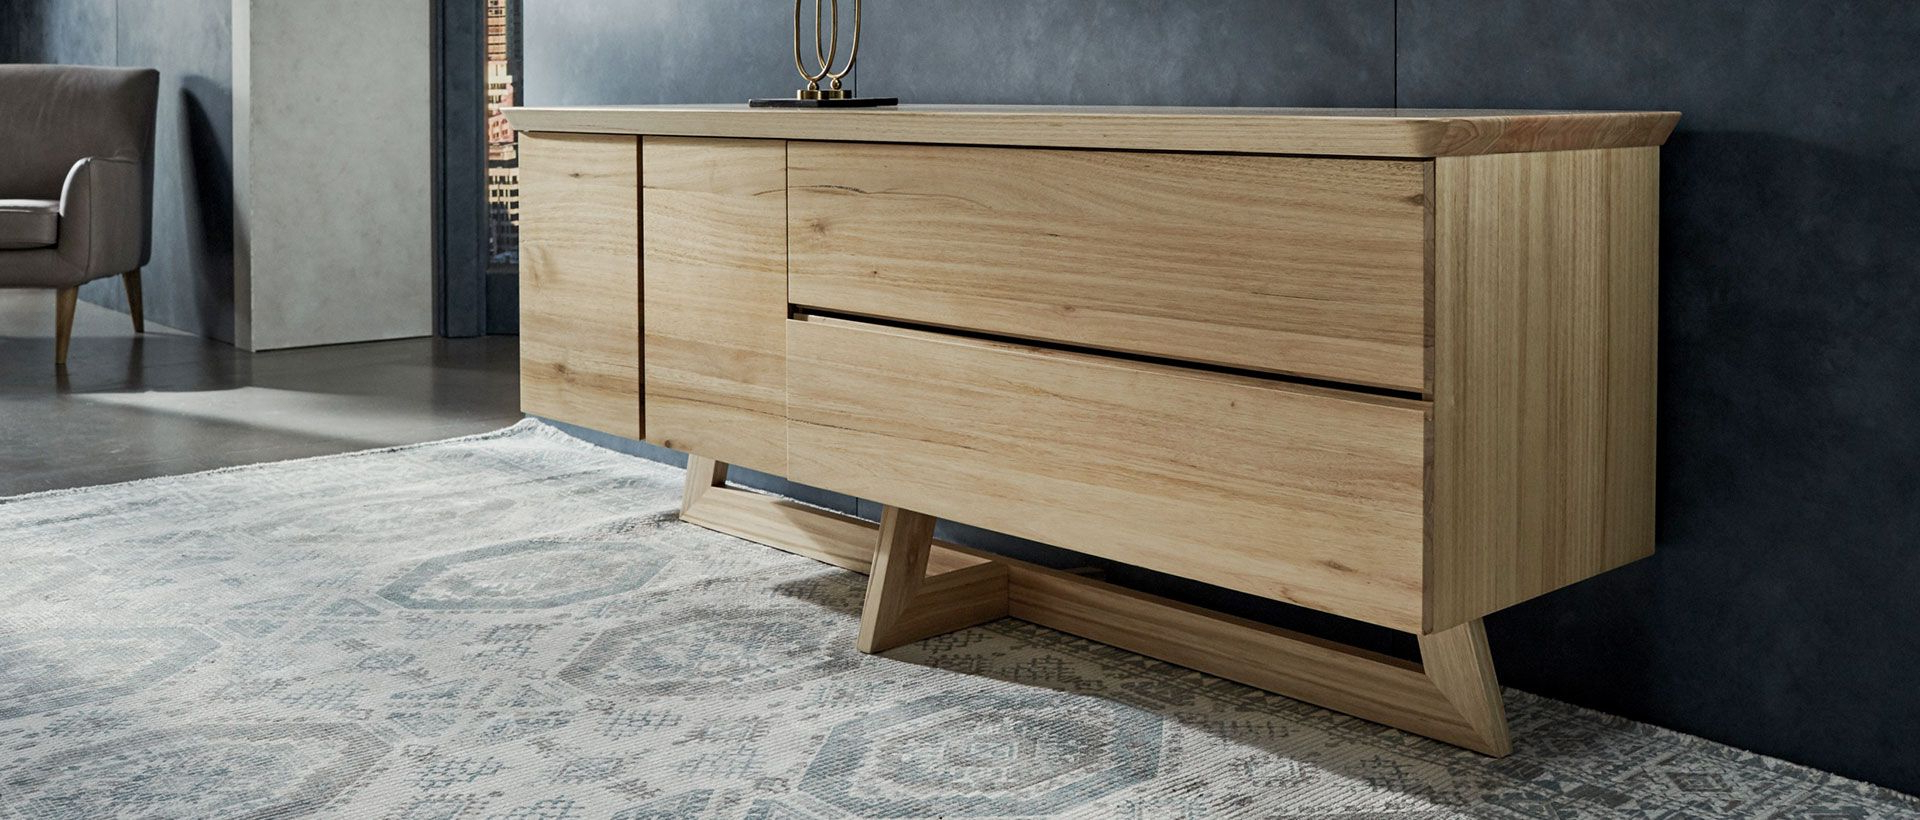 Buffets, Cabinets & Sideboards | Nick Scali In Contemporary Wooden Buffets With One Side Door Storage Cabinets And Two Drawers (View 1 of 20)